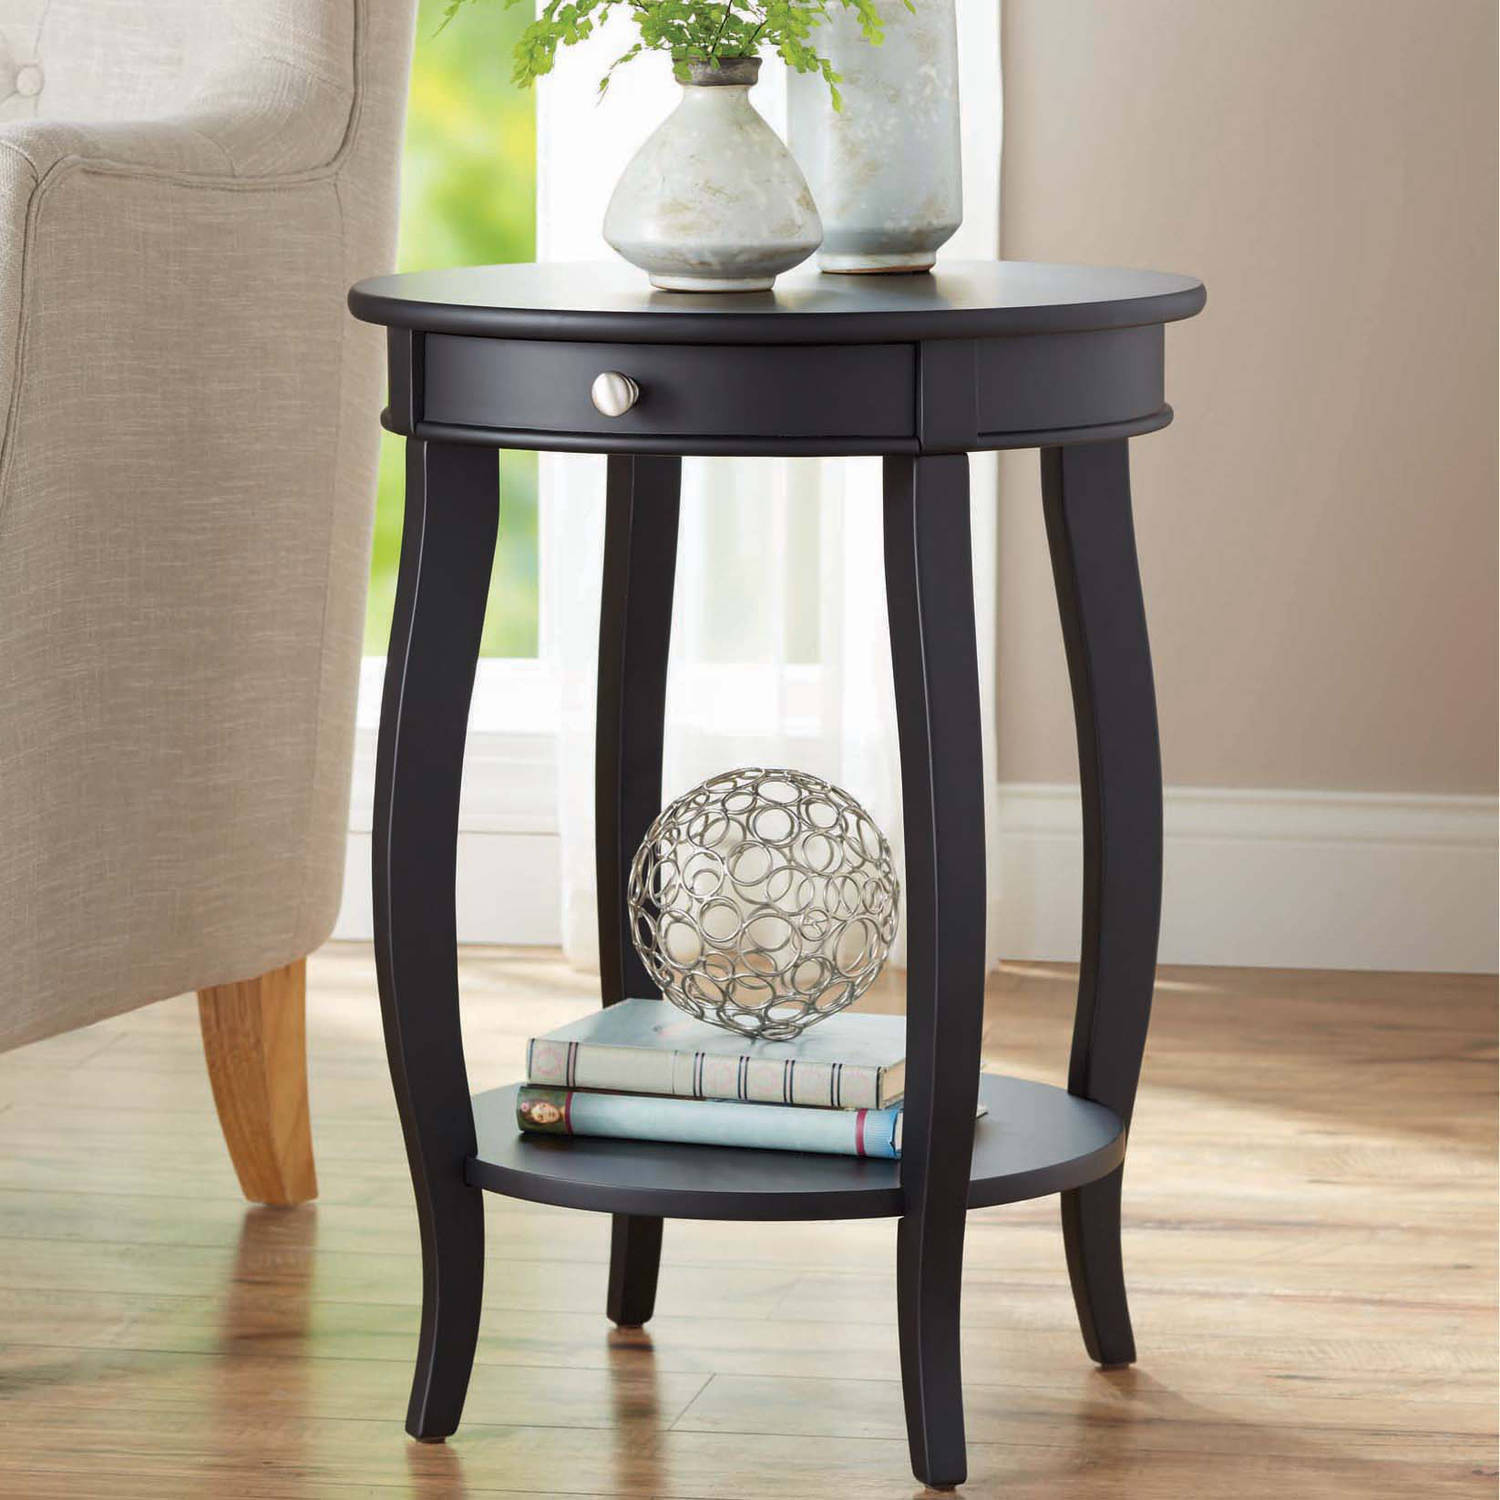 better homes gardens round accent table with drawer multiple furniture tables colors rod iron beverage tub stand pier one imports coffee black metal end comfy outdoor chair small